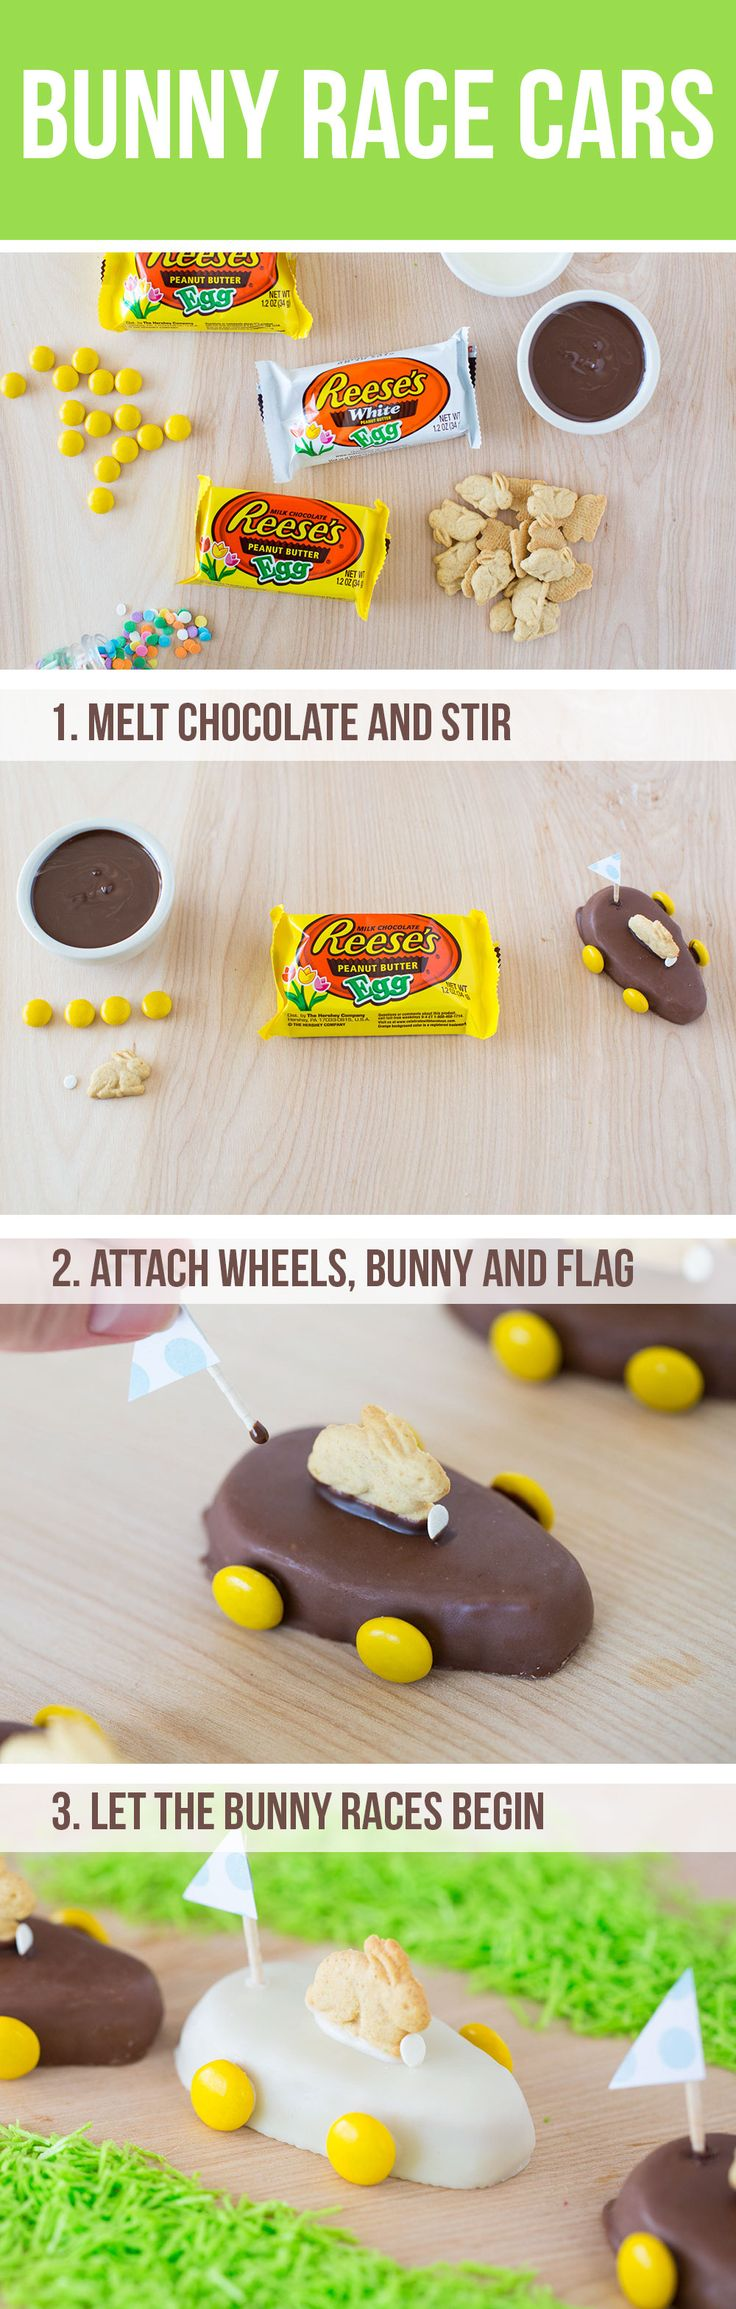 Easter Bunny Treats …the most adorable bunny race cars and chocolate peanut butter bunnies! Your kids will love these mini desserts for Easter.http://justgetideas.com/easter-2016-key-facts-good-friday-easter-sunday-easter-monday/